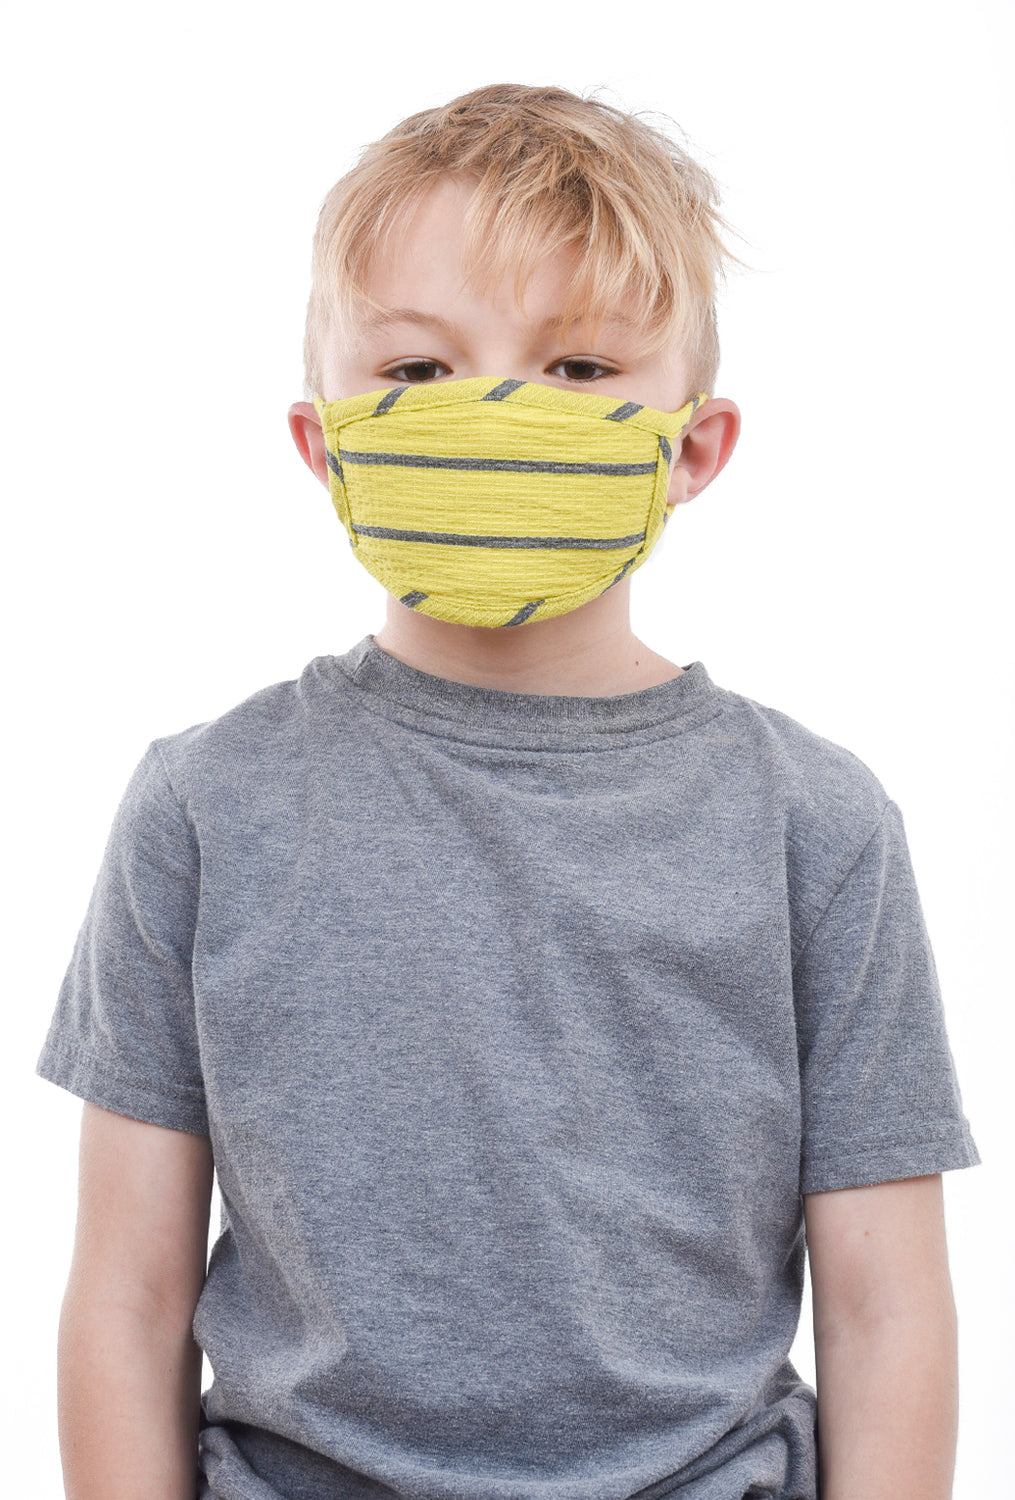 Coin1804 Kiddie Coin Face Mask, Yellow